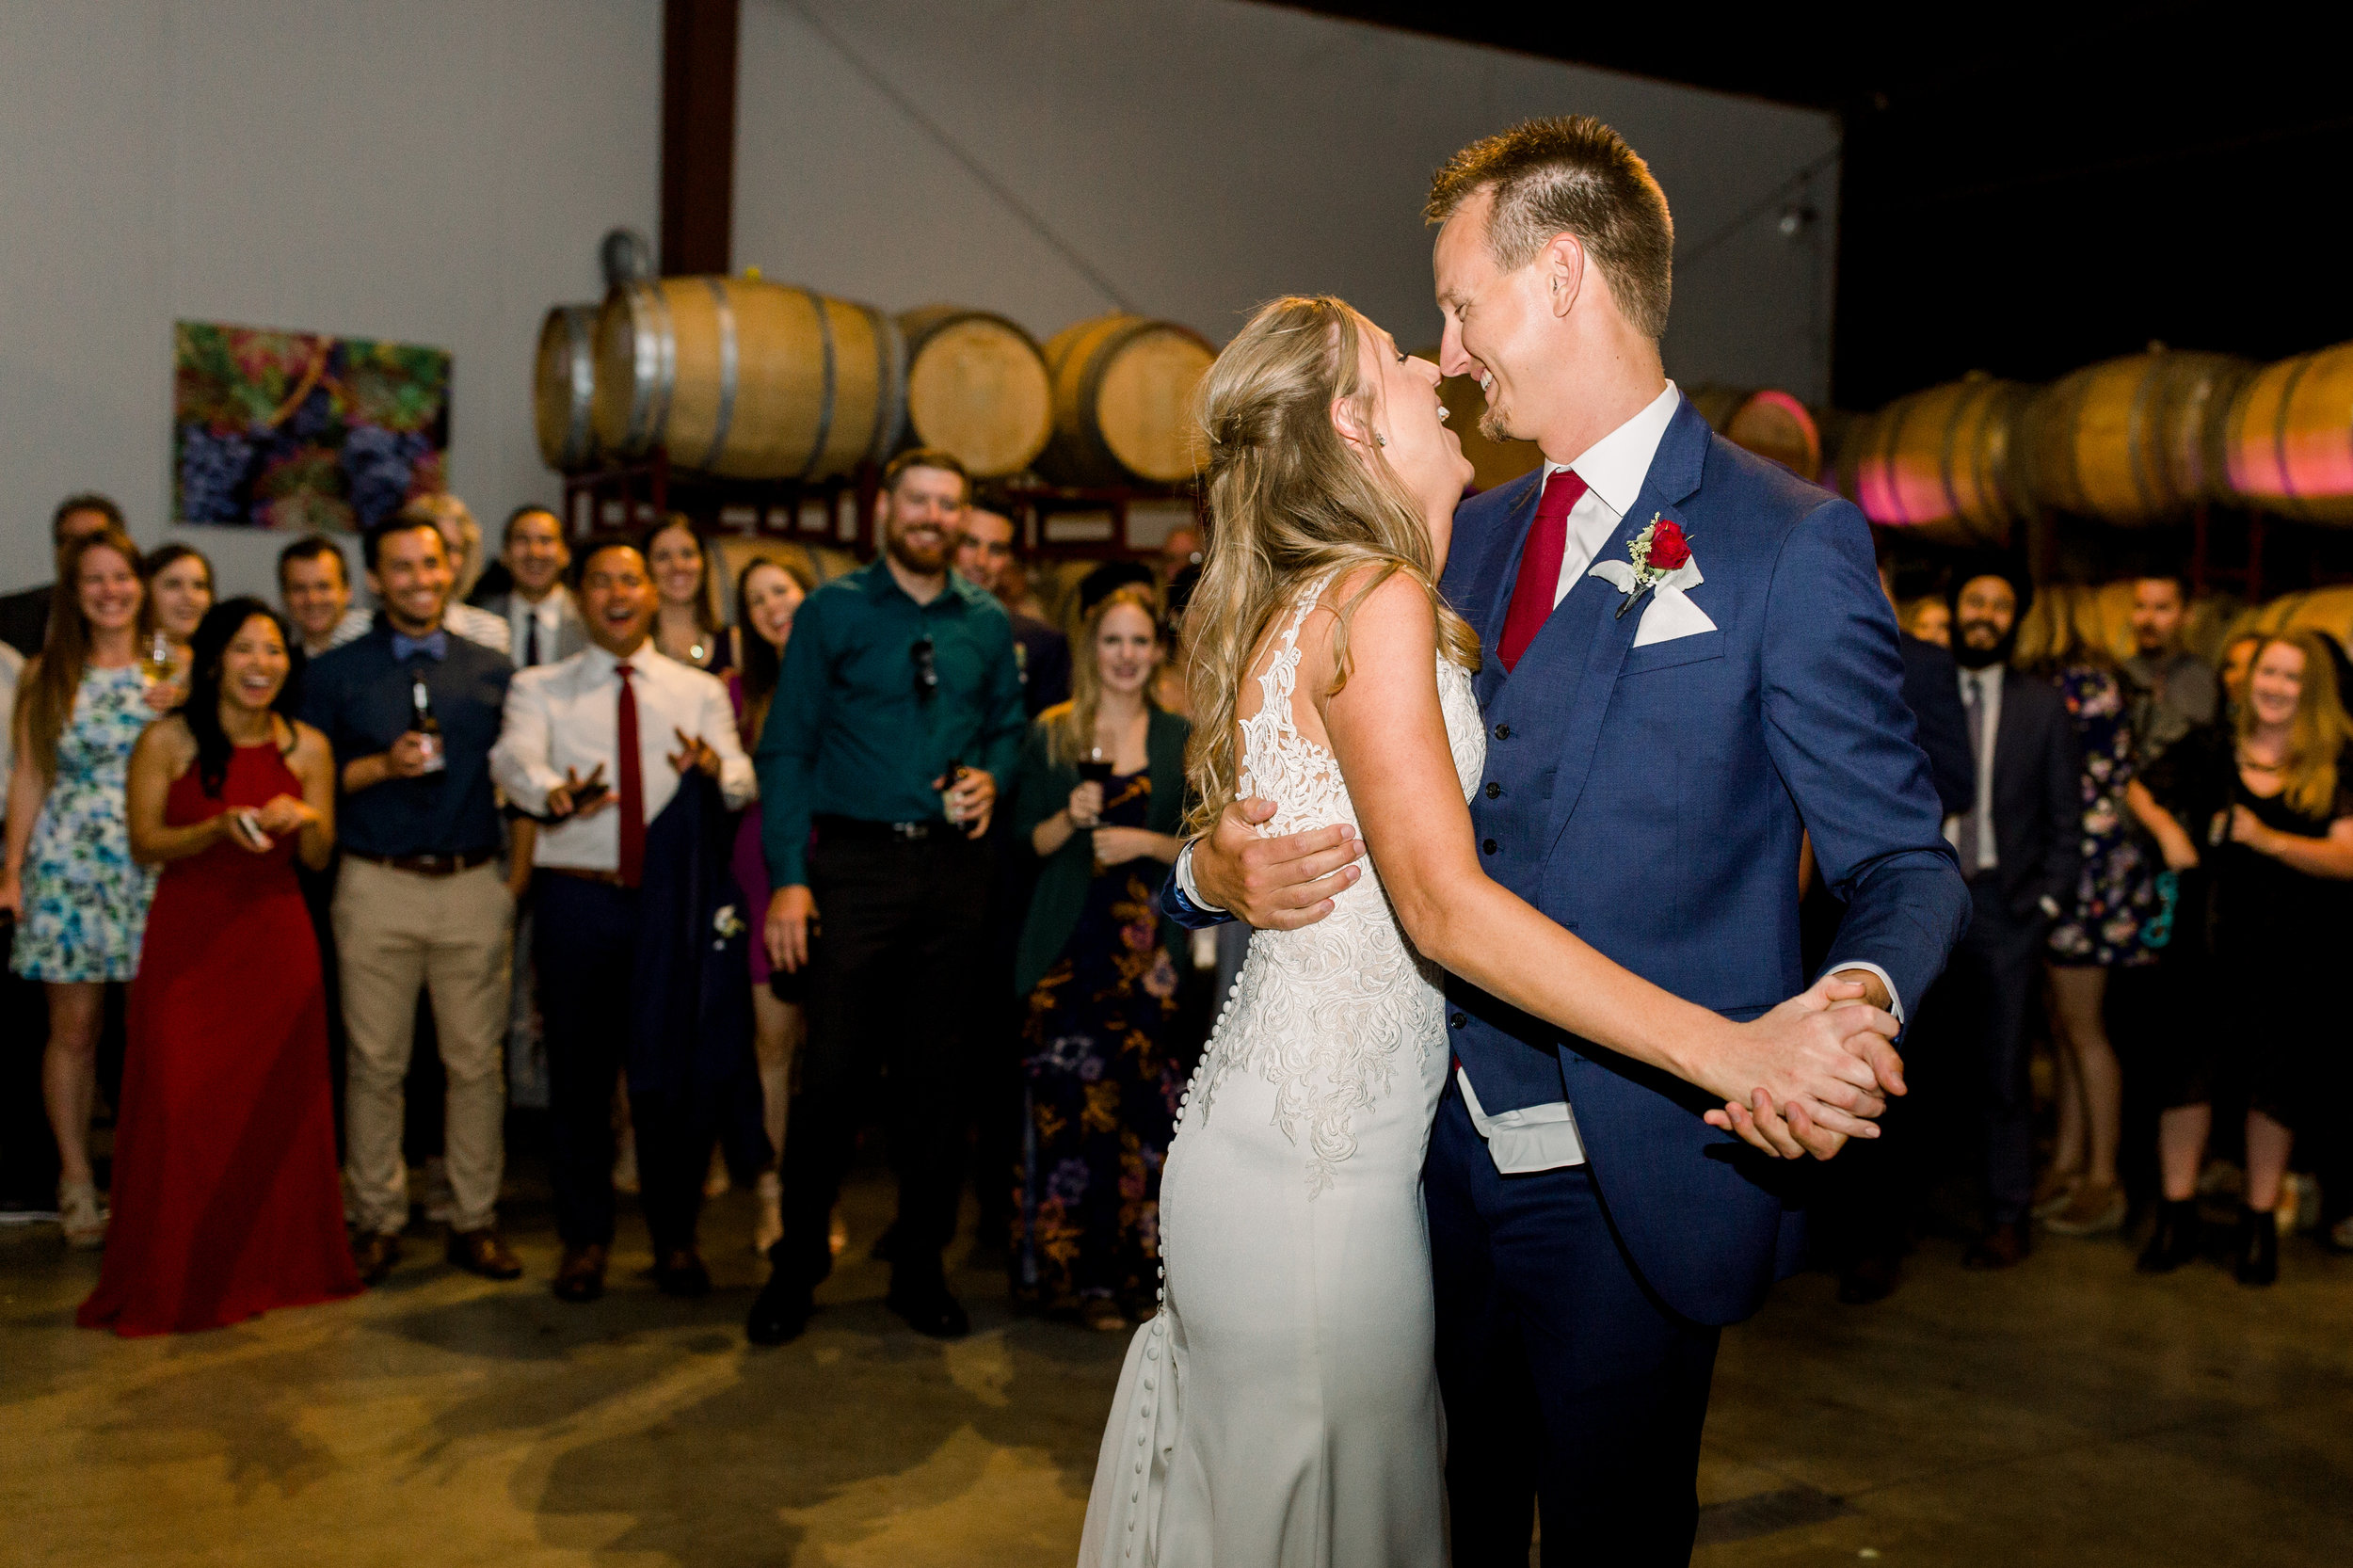 crooked-vine-winery-wedding-in-livermore-california-126.jpg